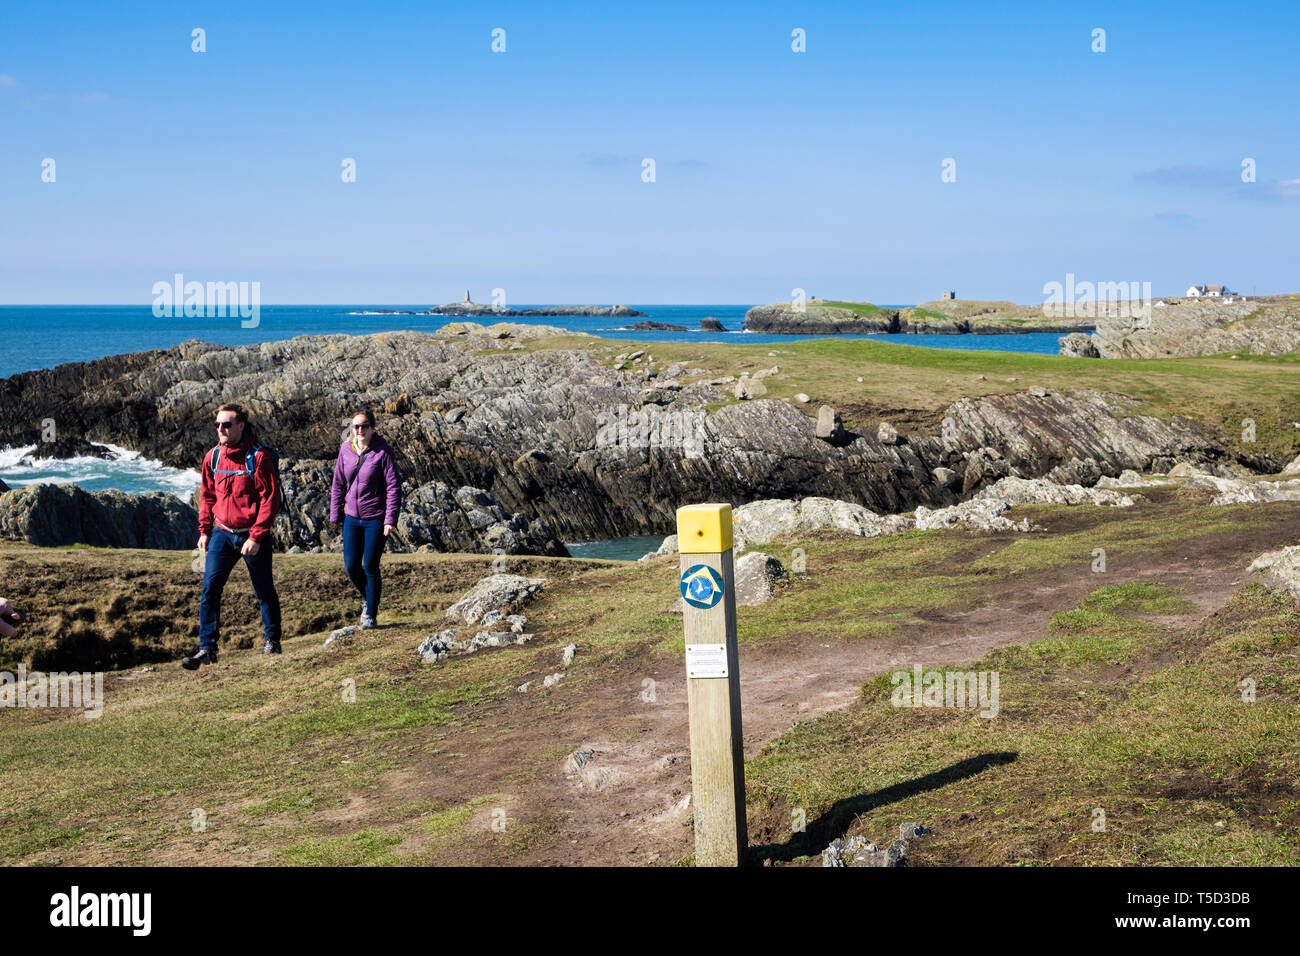 Two people walking on the Isle of Anglesey Coastal Path from Rhoscolyn, Isle of Anglesey, Wales, UK, Britain Stock Photo